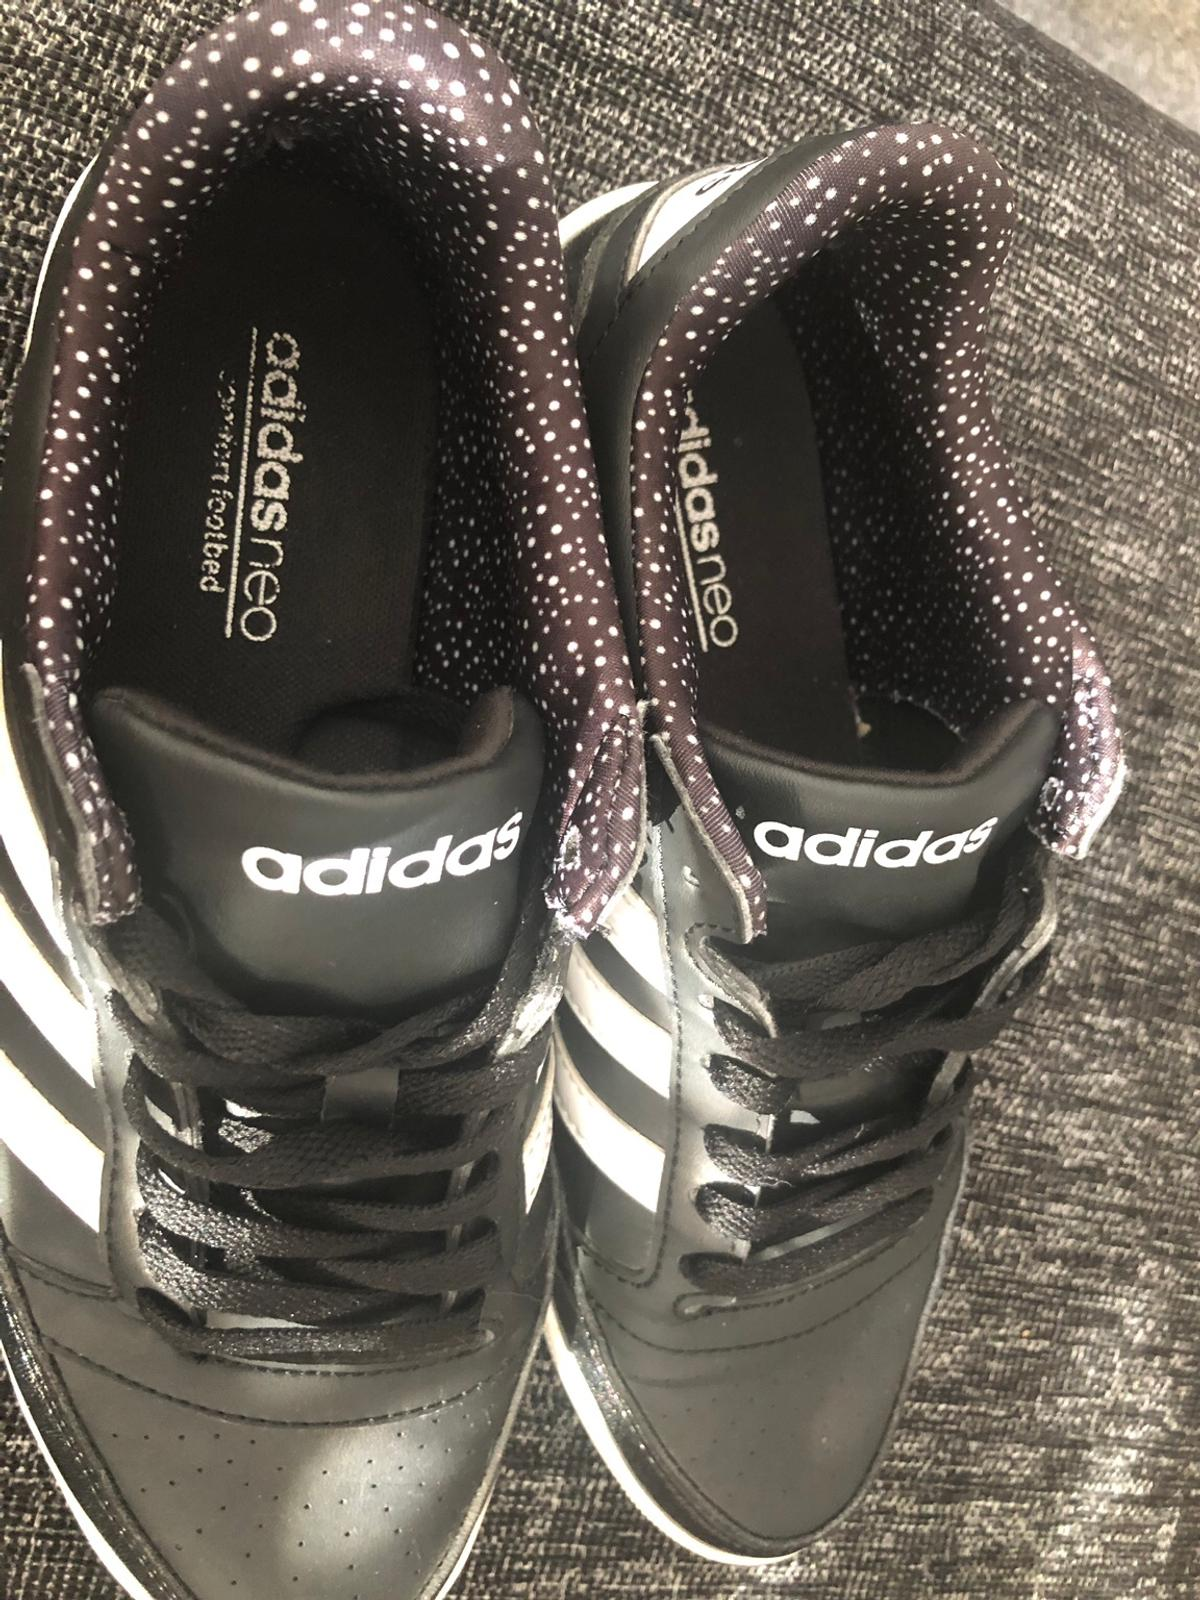 Adidas Damen Schuhe in 90547 Stein for €40.00 for sale | Shpock